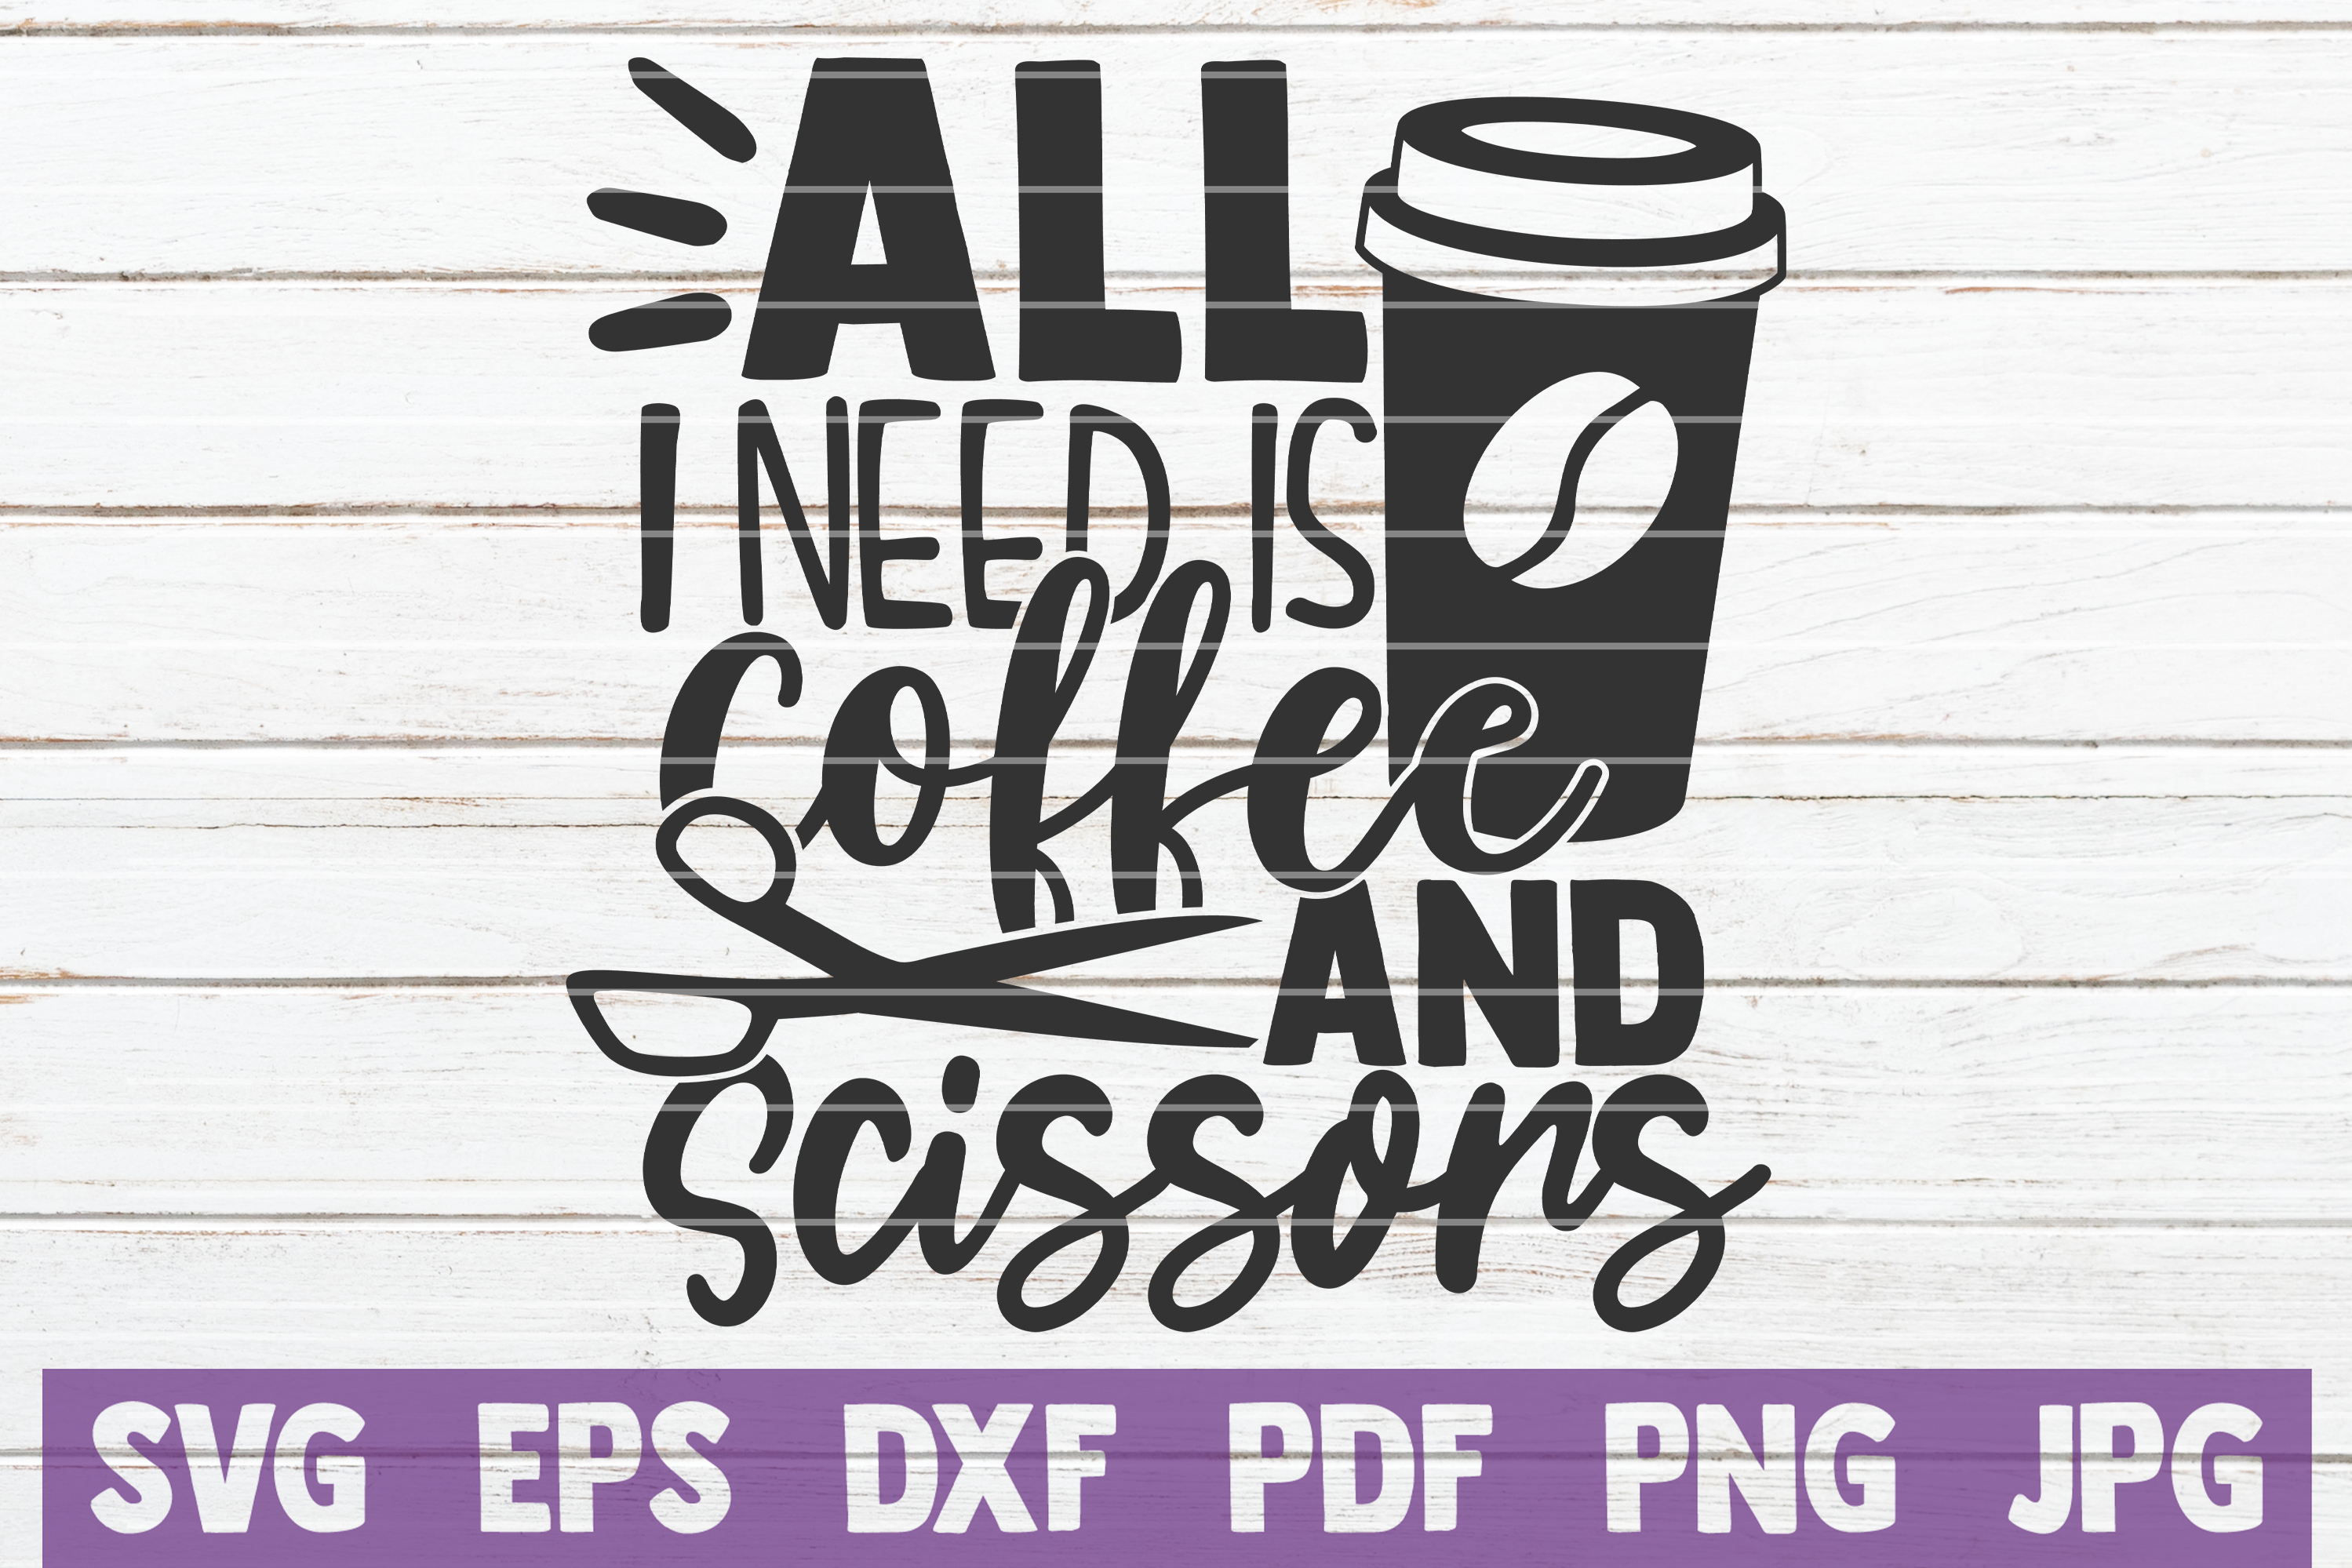 Download Free All I Need Is Coffee An Scissors Graphic By Mintymarshmallows SVG Cut Files